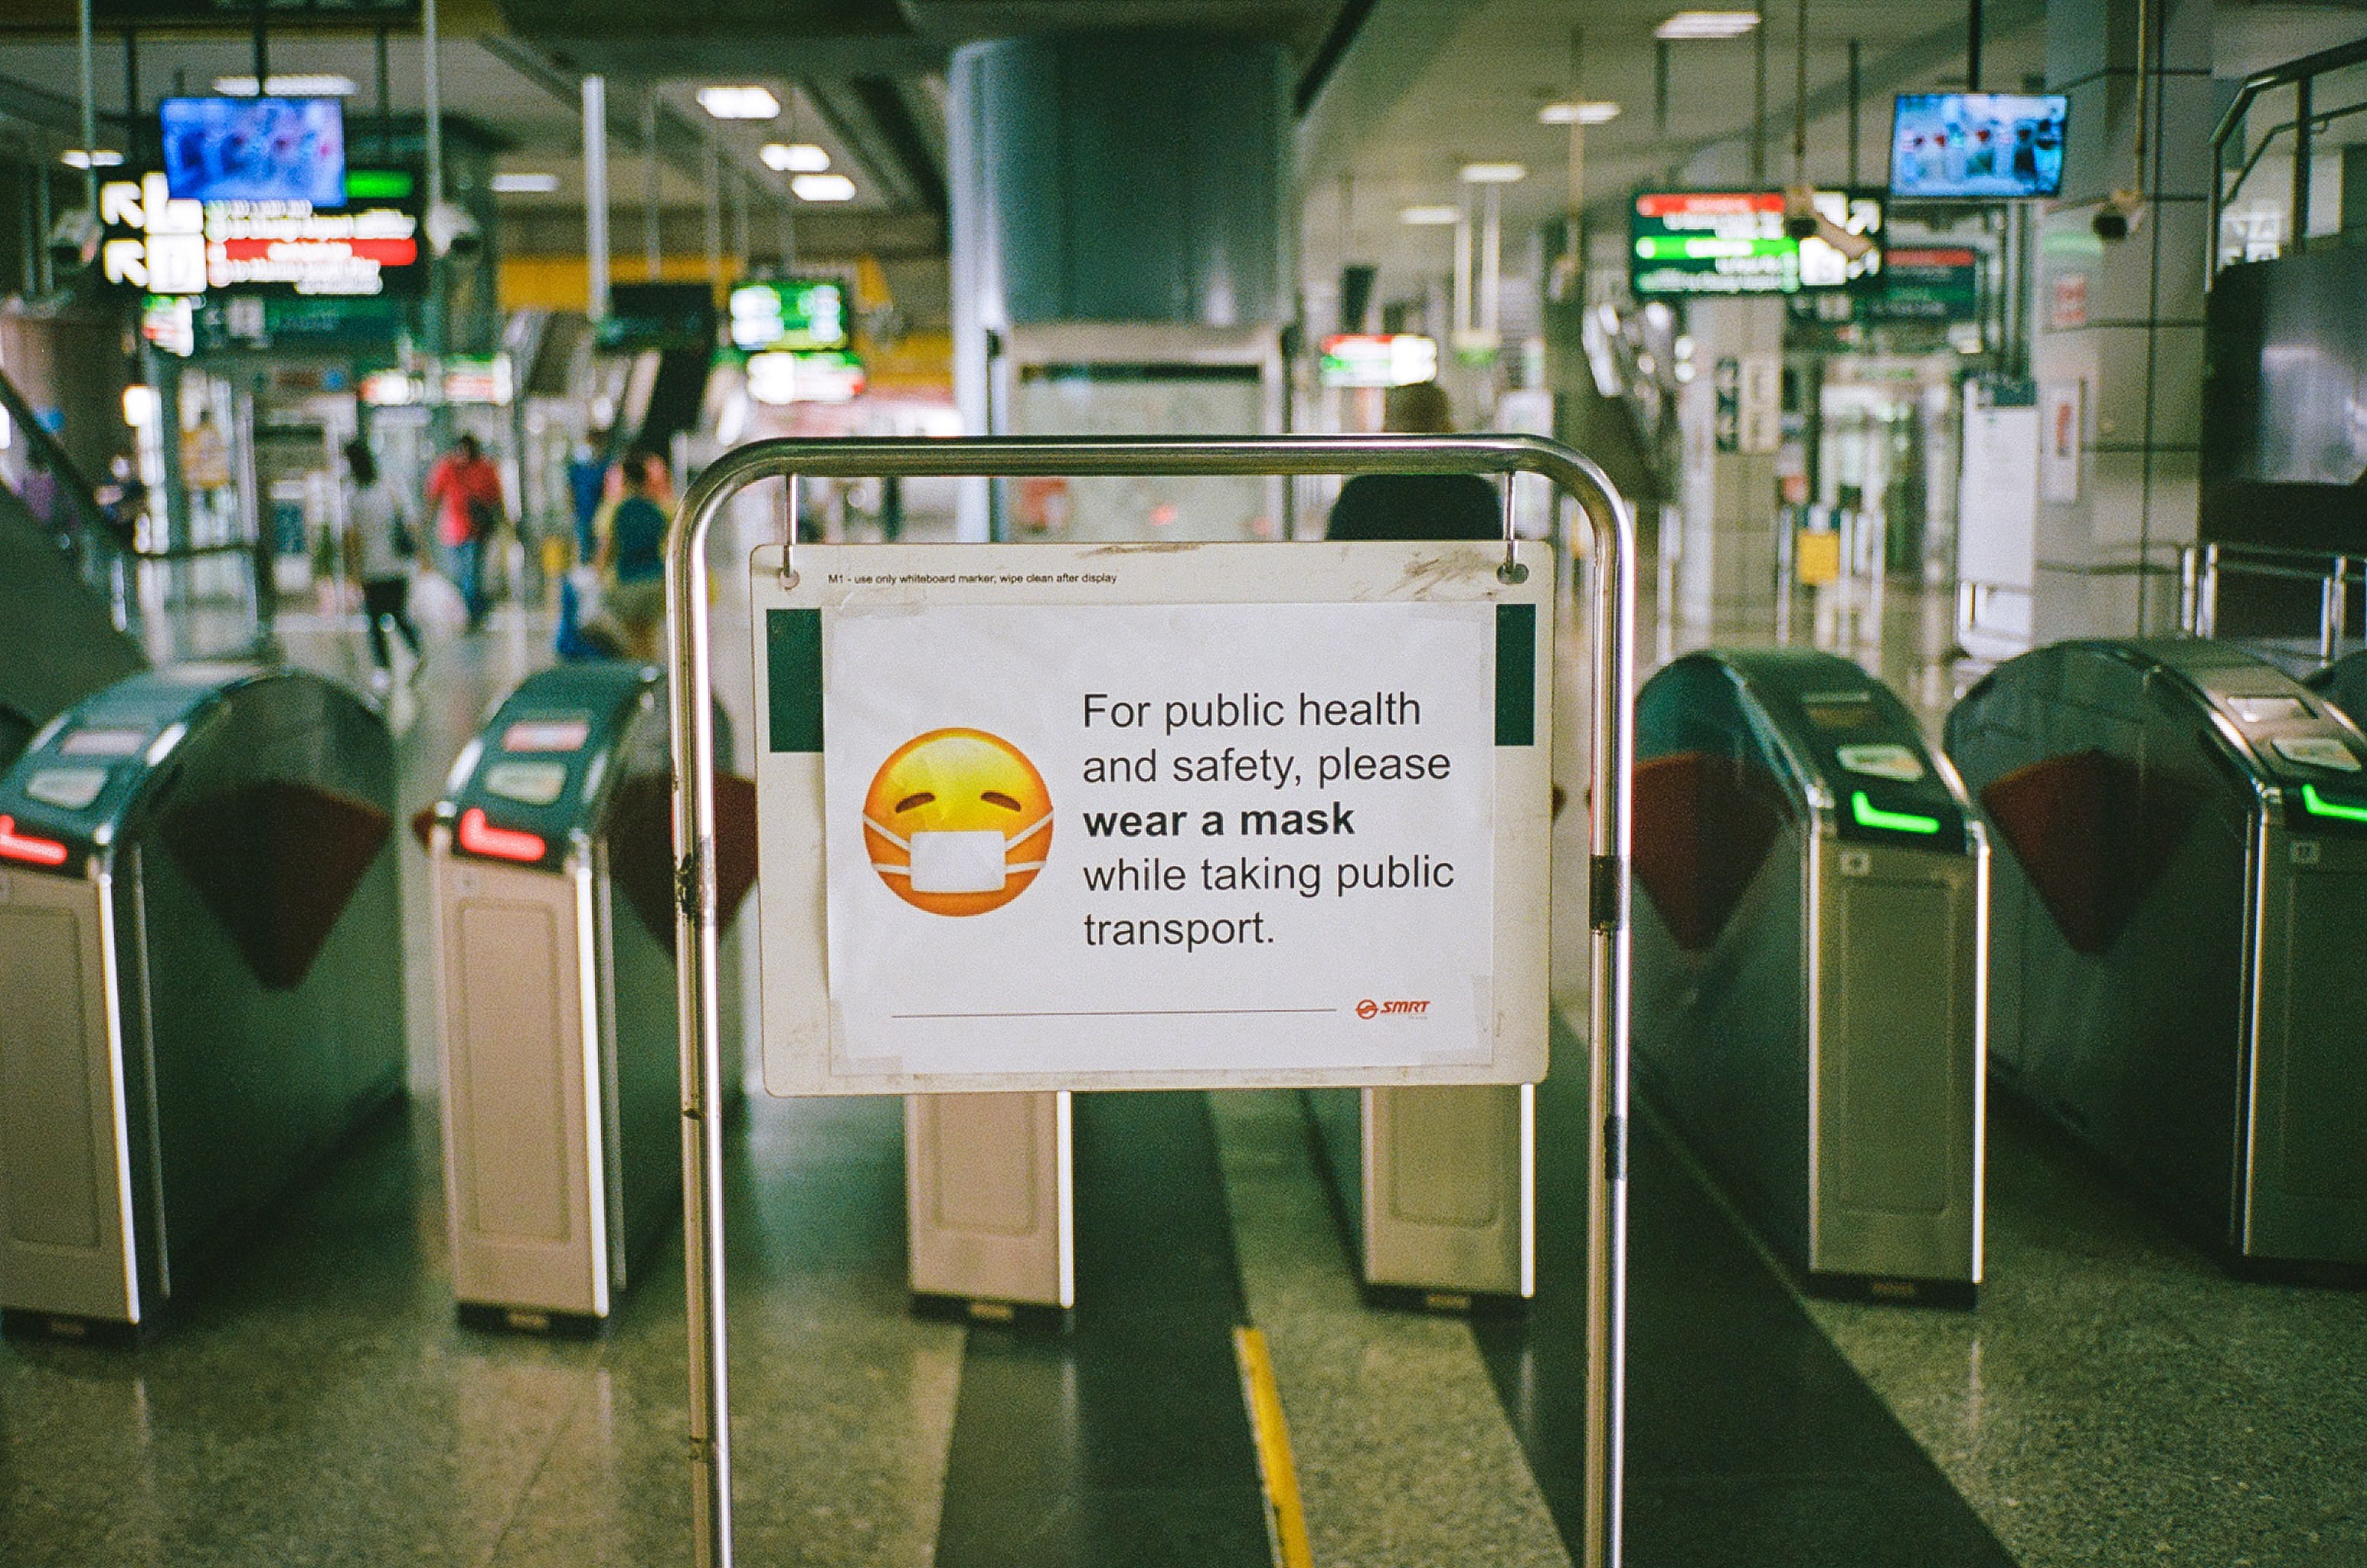 Image of subway station turn styles with sign asking for patrons to wear mask on public transportation